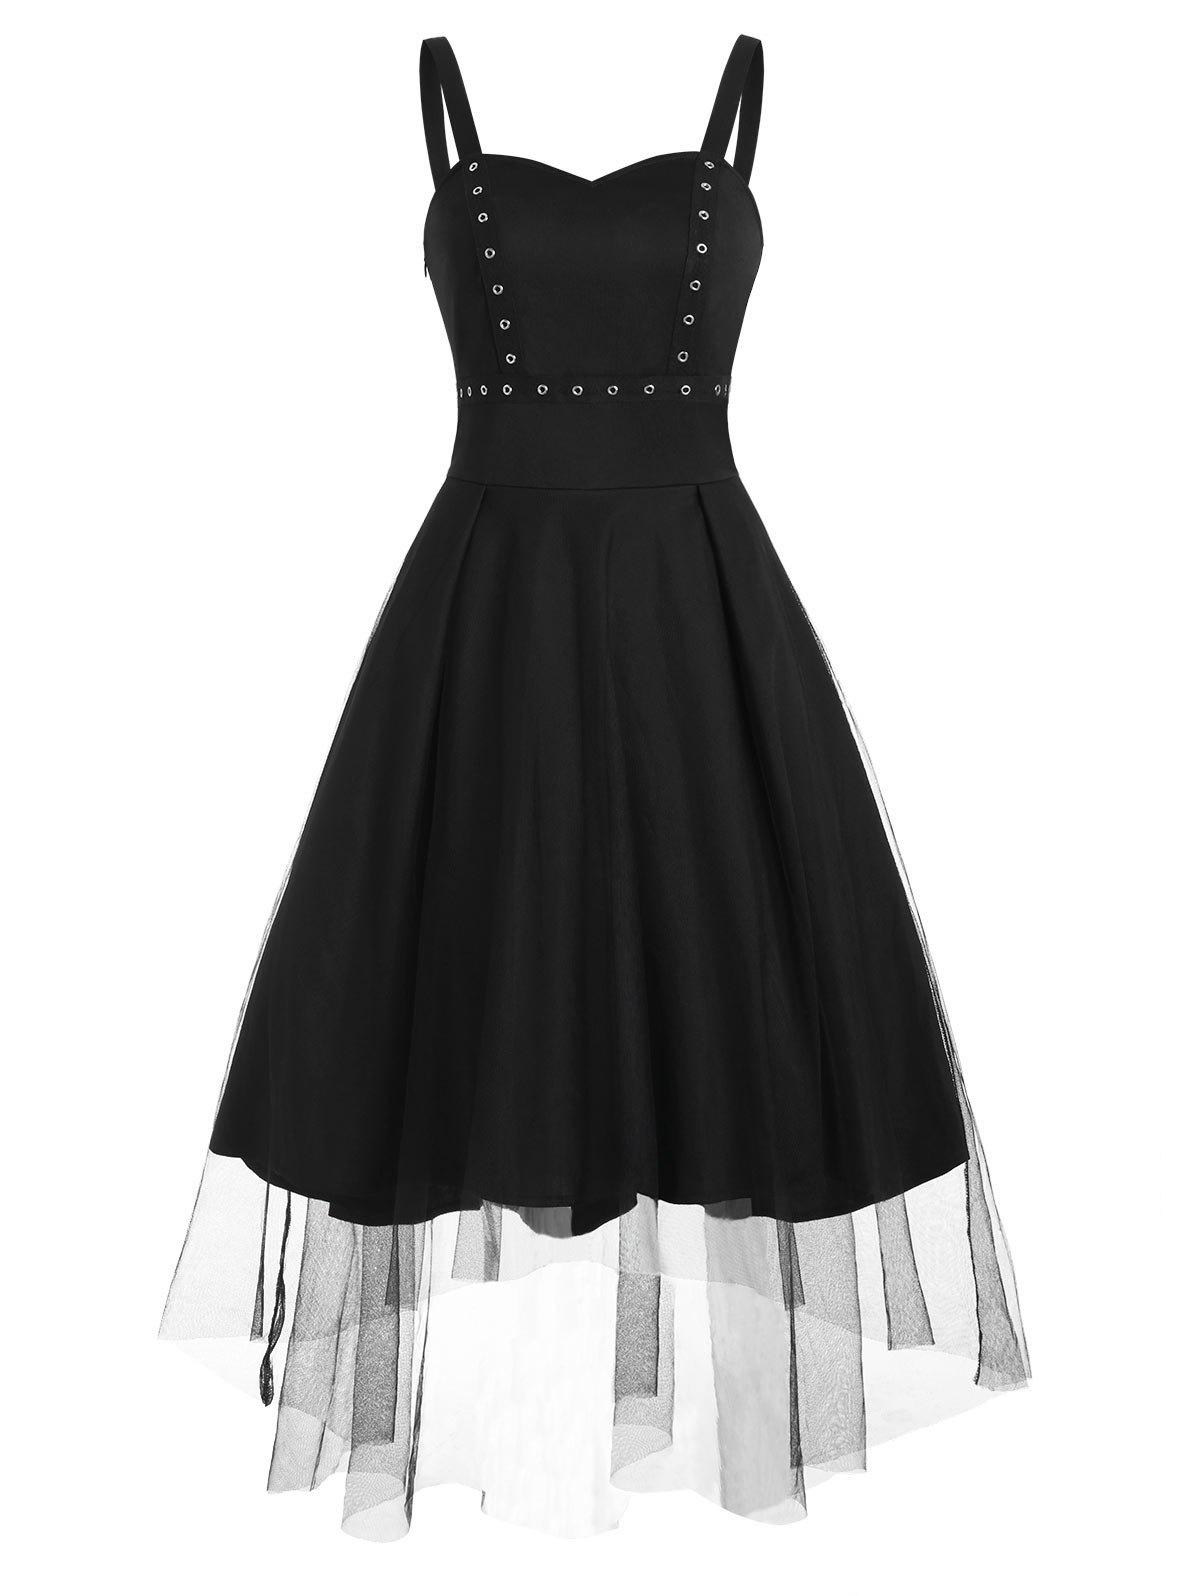 Grommet Mesh Overlay High Low Dress - BLACK S